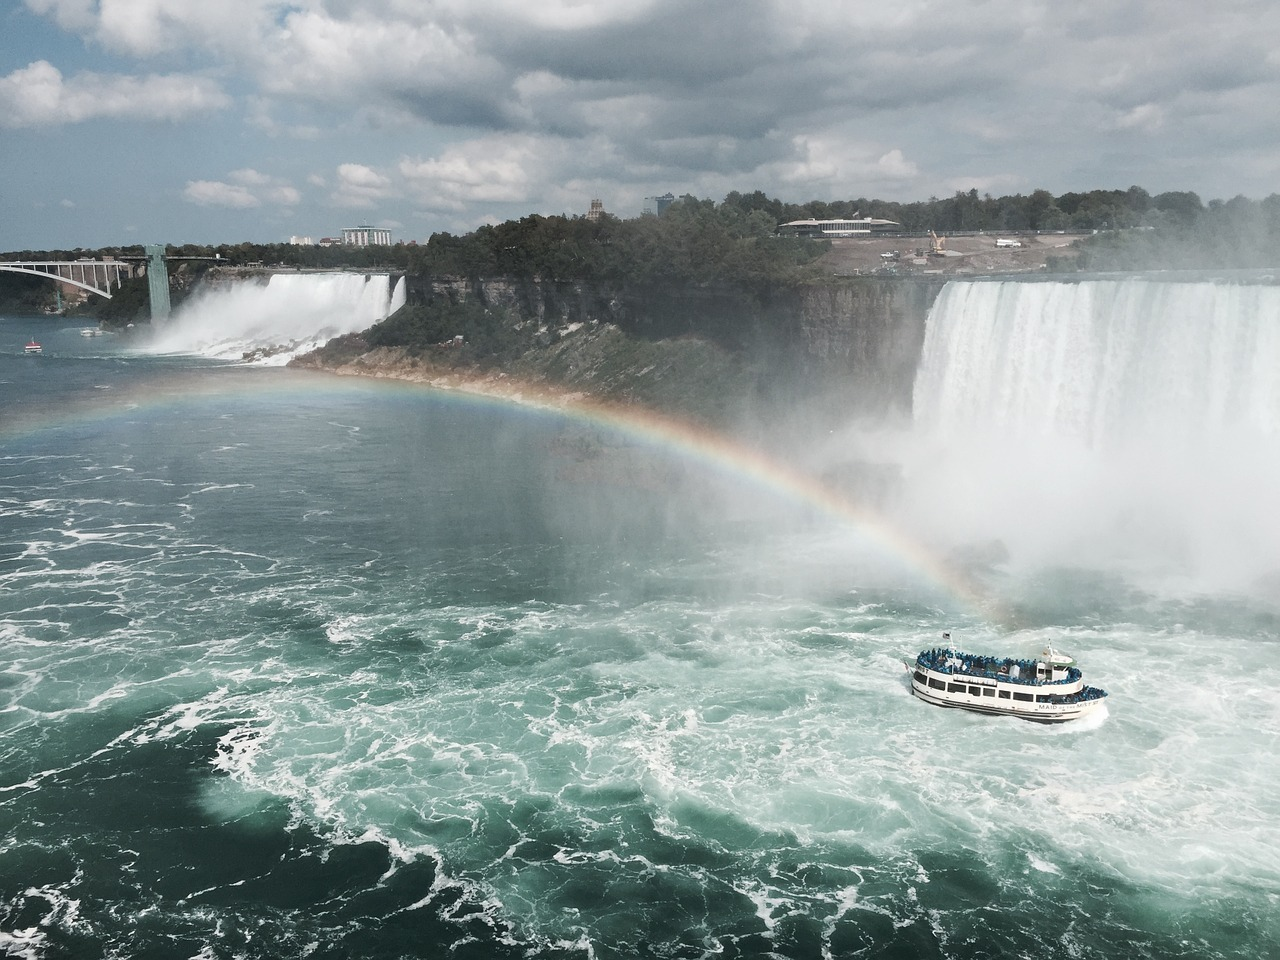 This travel guide to Niagara Falls will help you get the most out of your stay there ... photo by CC user yesika on pixabay